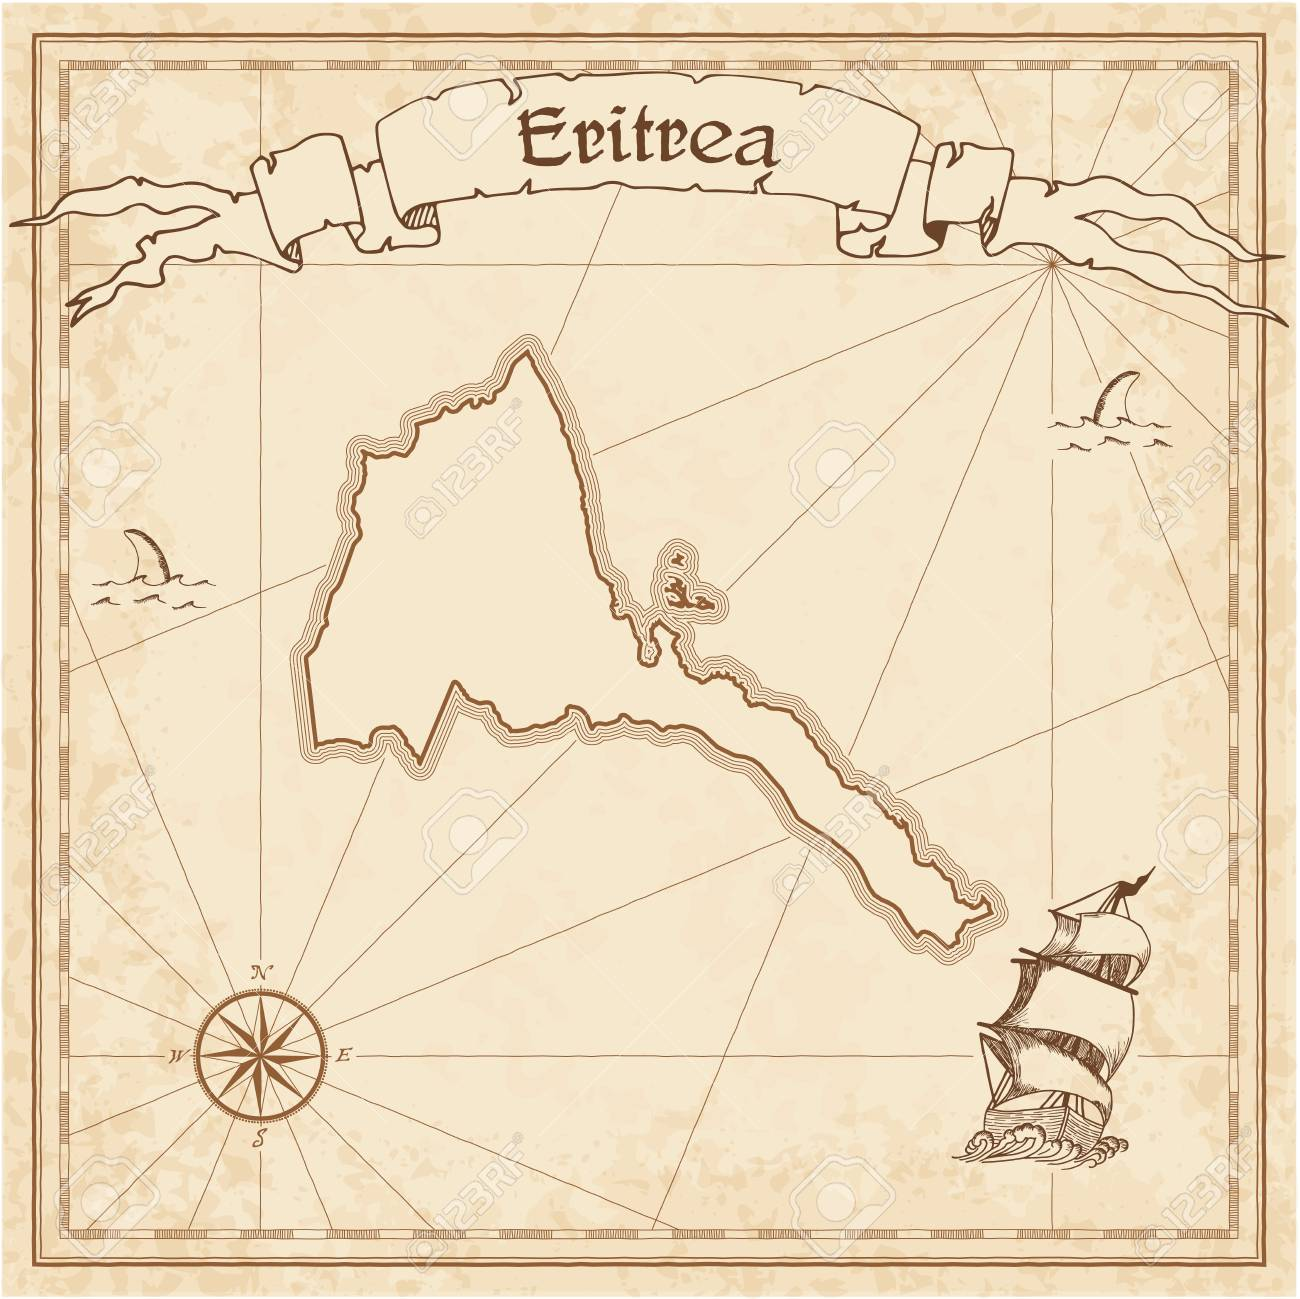 eritrea old treasure map sepia engraved template of pirate map